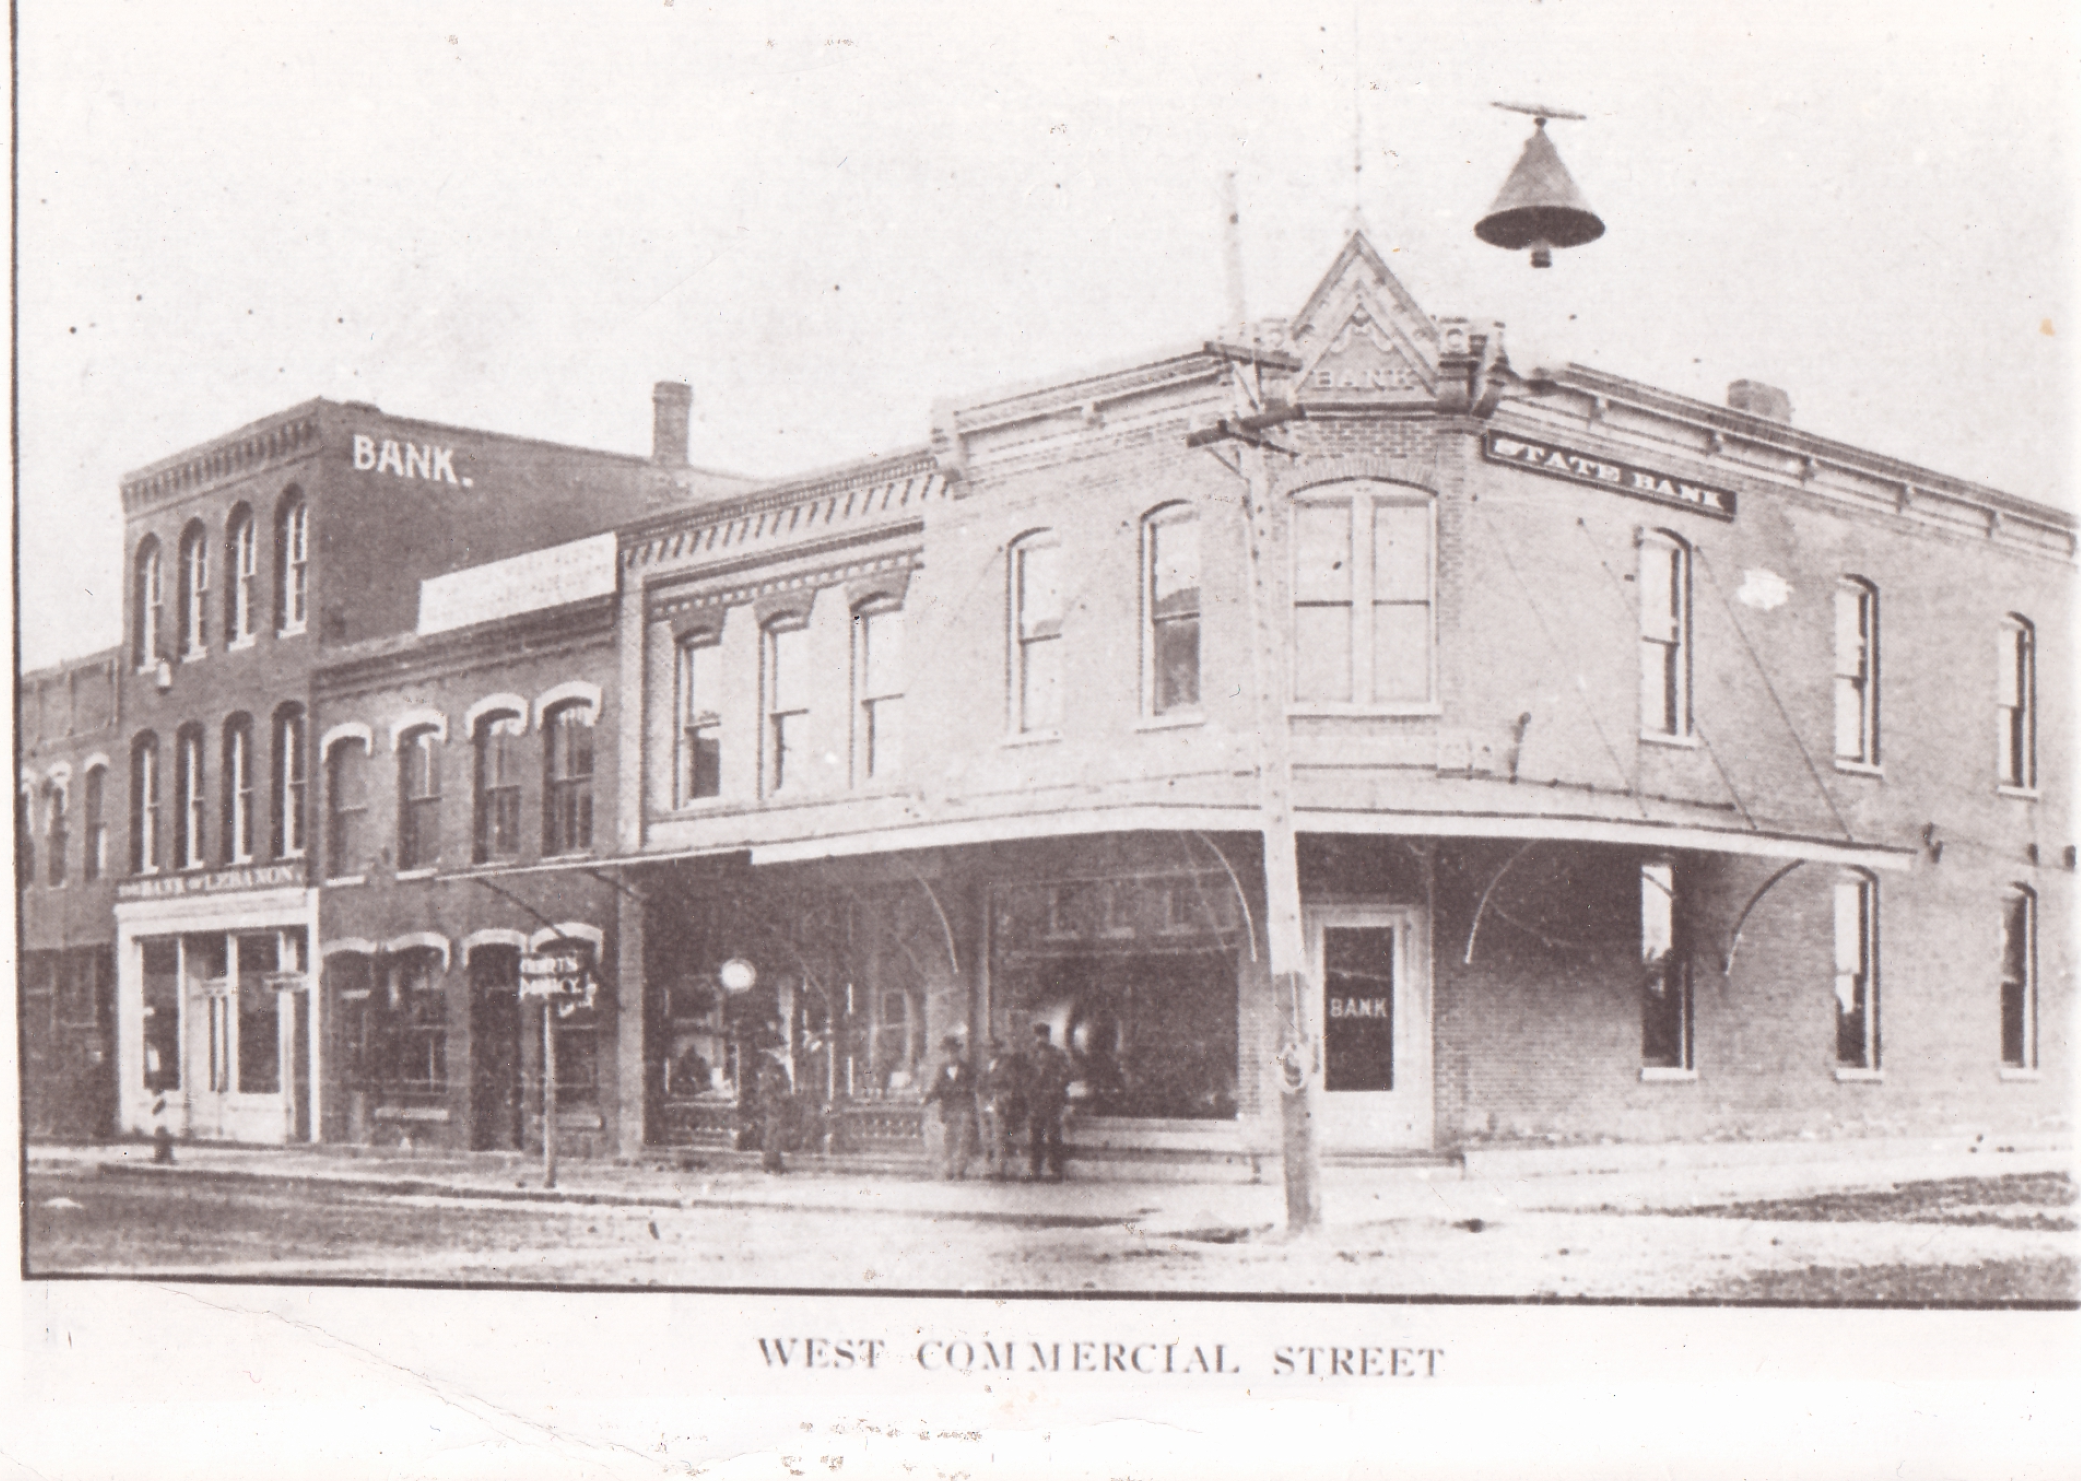 West Commercial Street